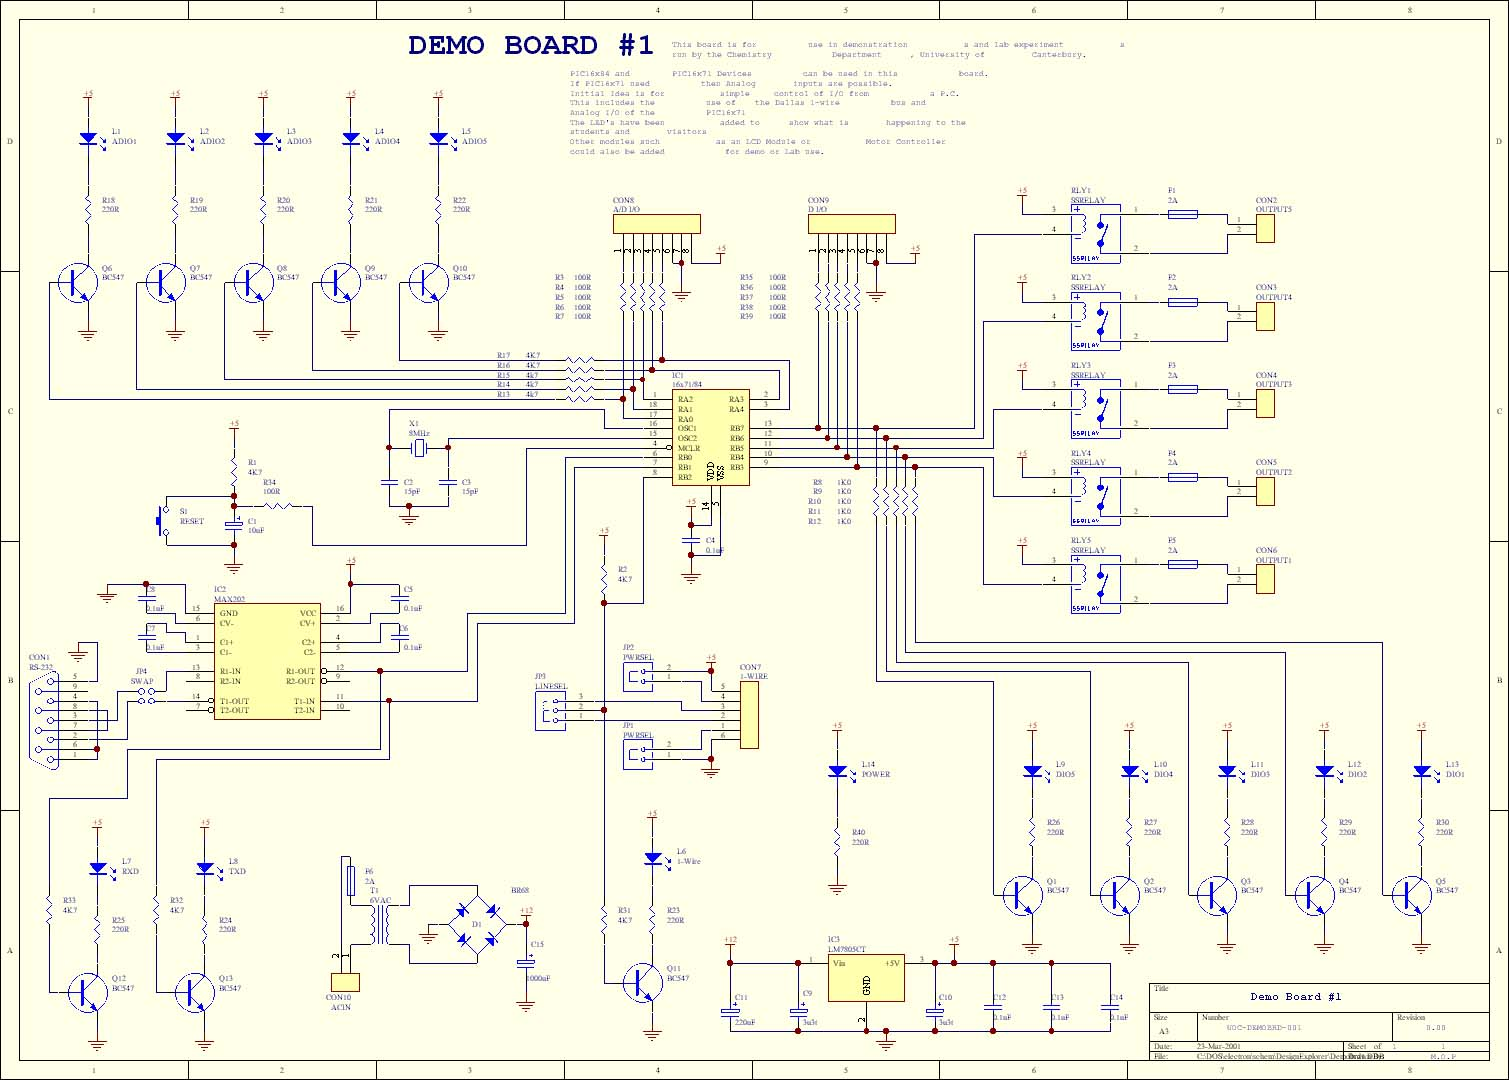 Microcontroller Based Circuits Projects Tutorials Electronics Diagrams Free Pic Demo Board